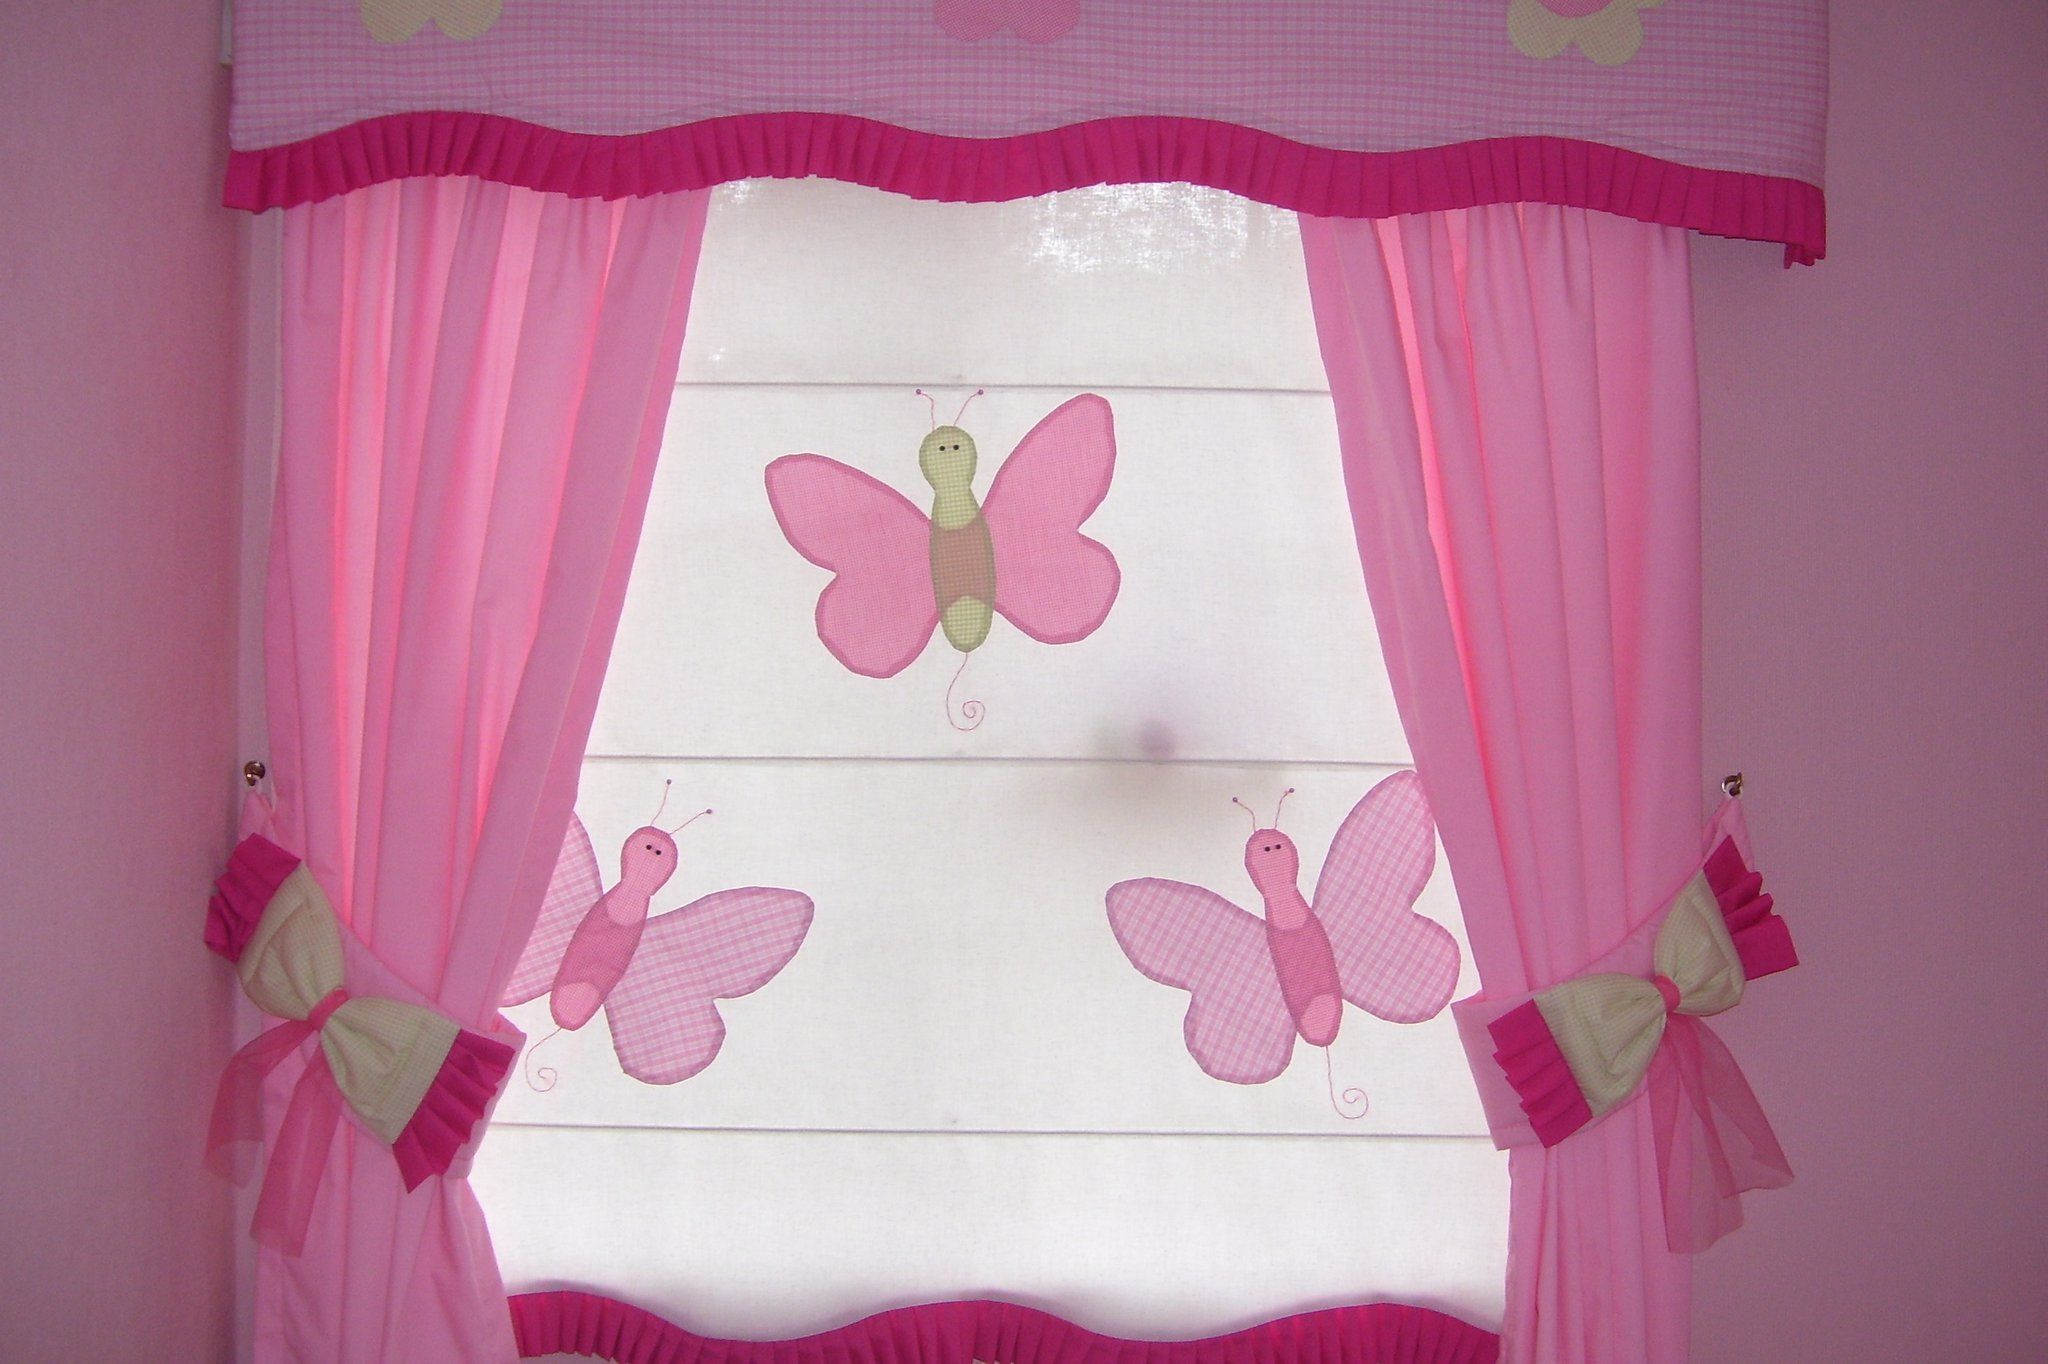 Cortinas Dormitorio Infantil Cortinaje Infantil Curtains Pinterest Cortinaje